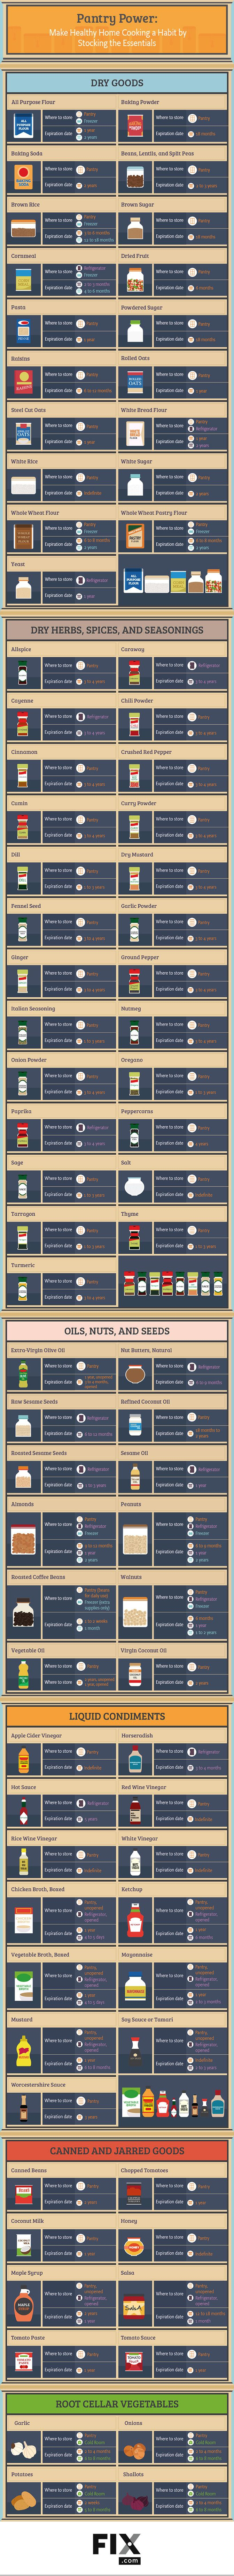 Pantry Guide - What to store and for how long...